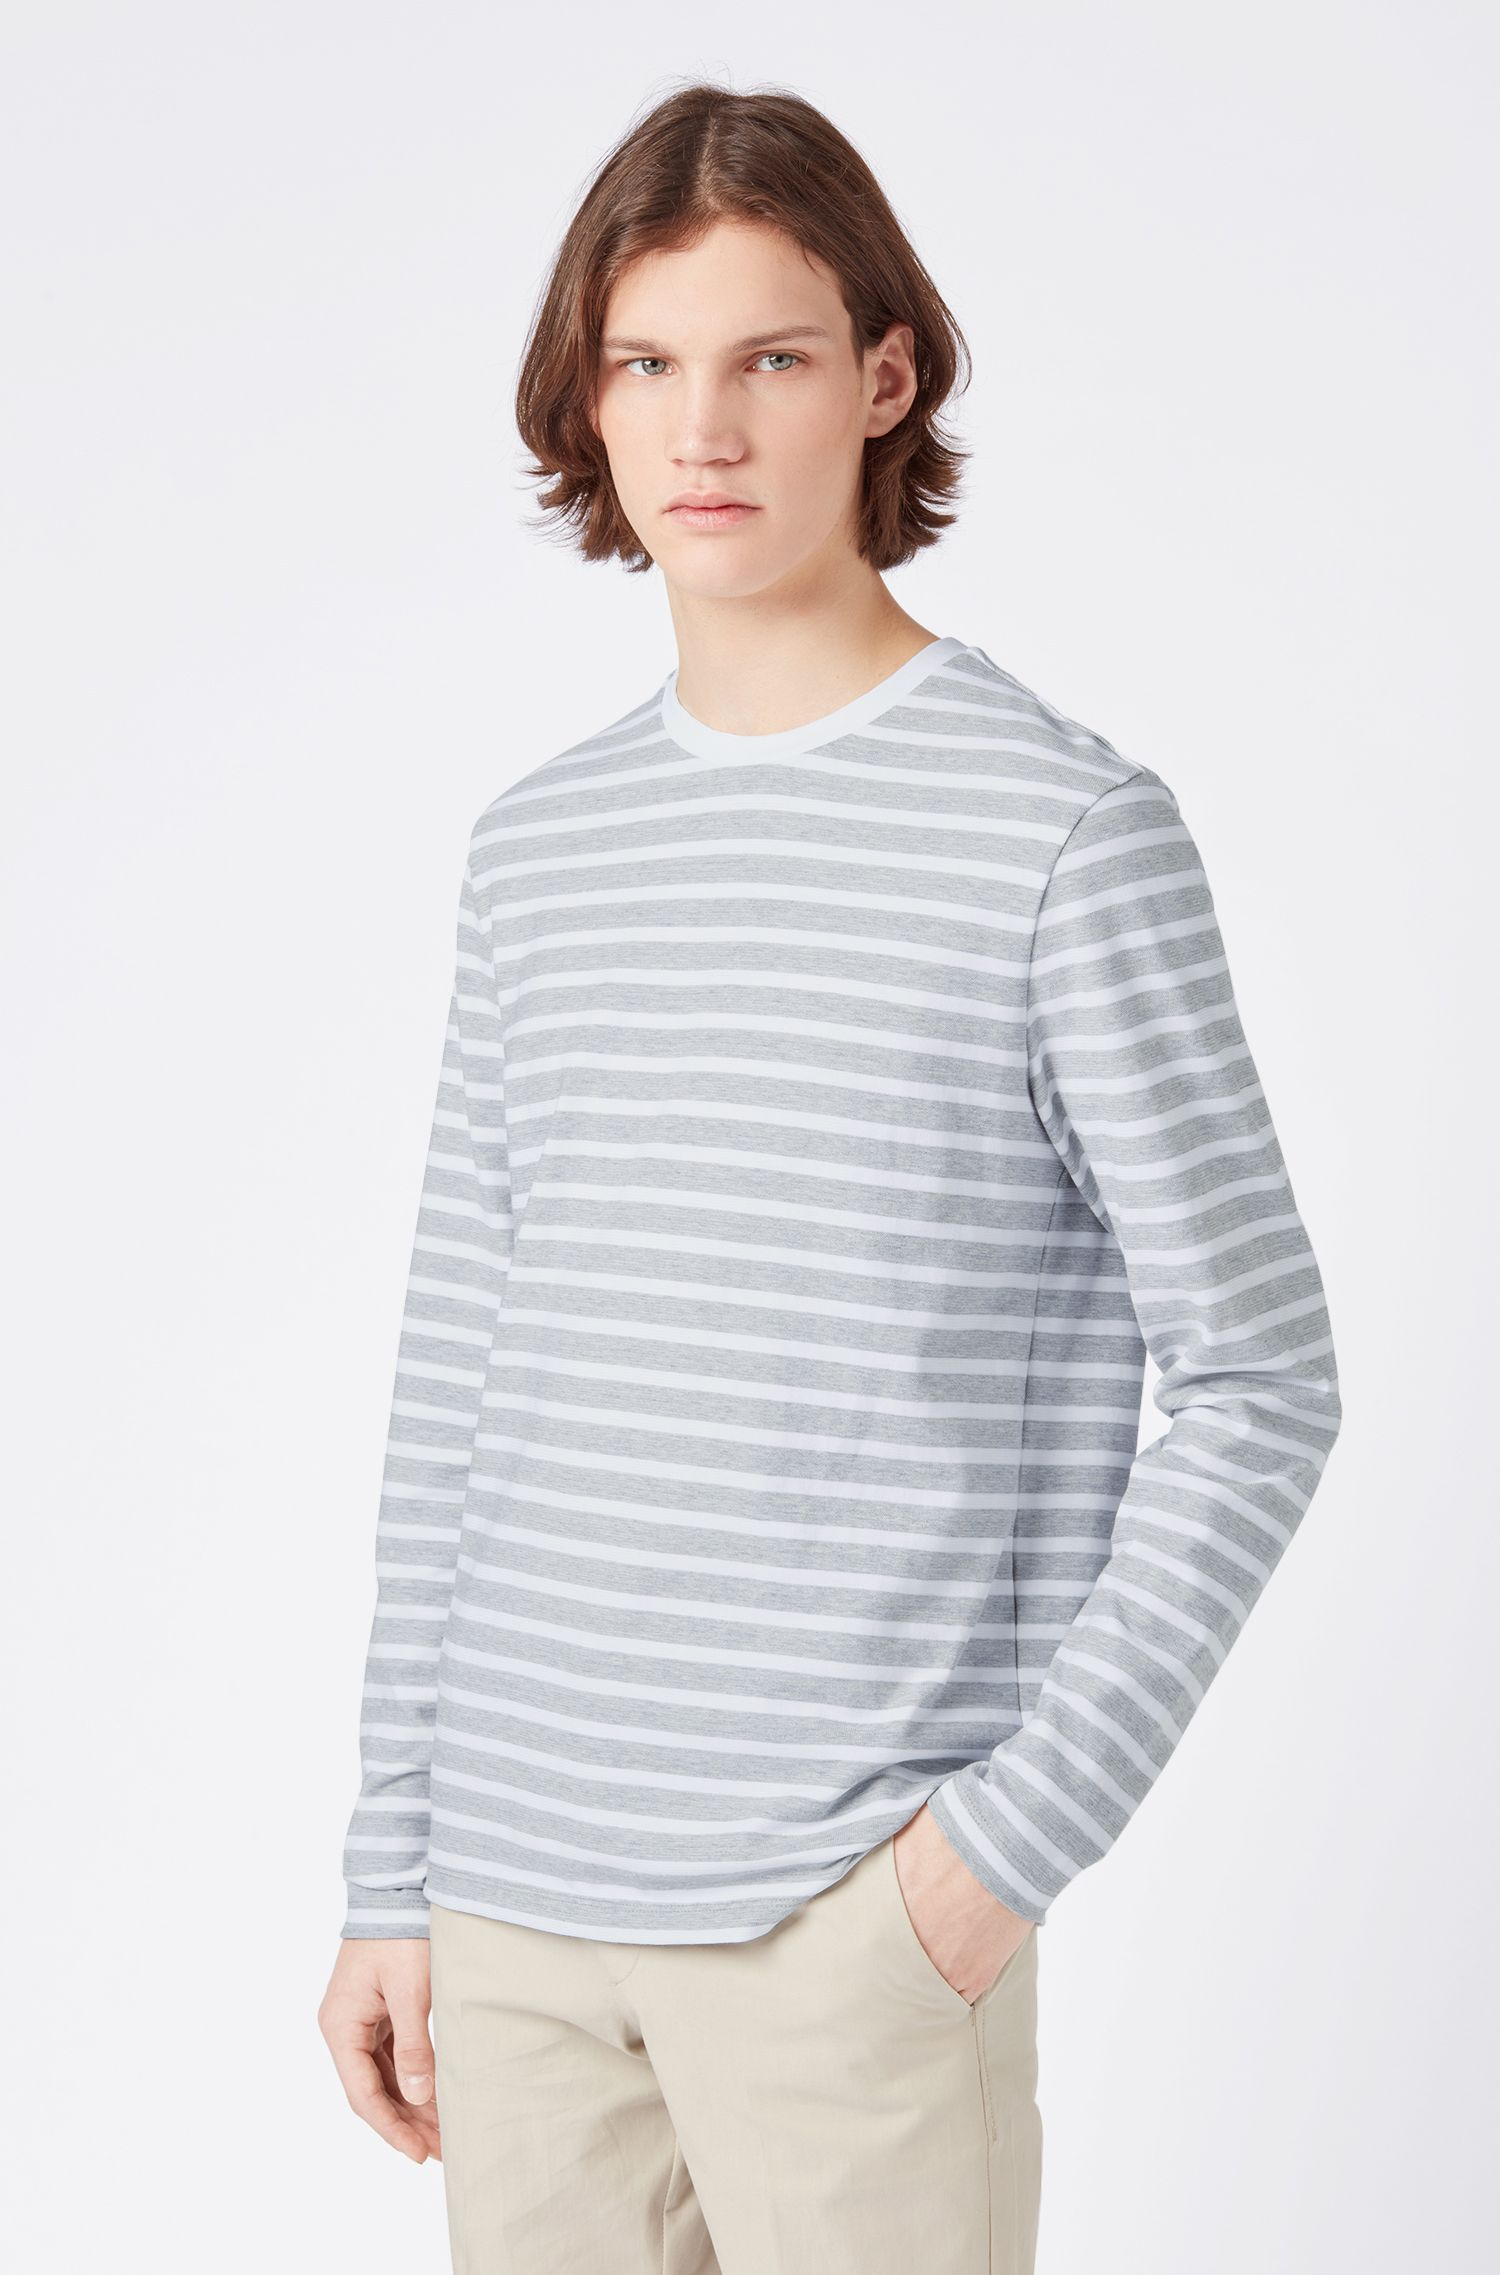 Horizontal-striped long-sleeved T-shirt in cotton, Open Grey